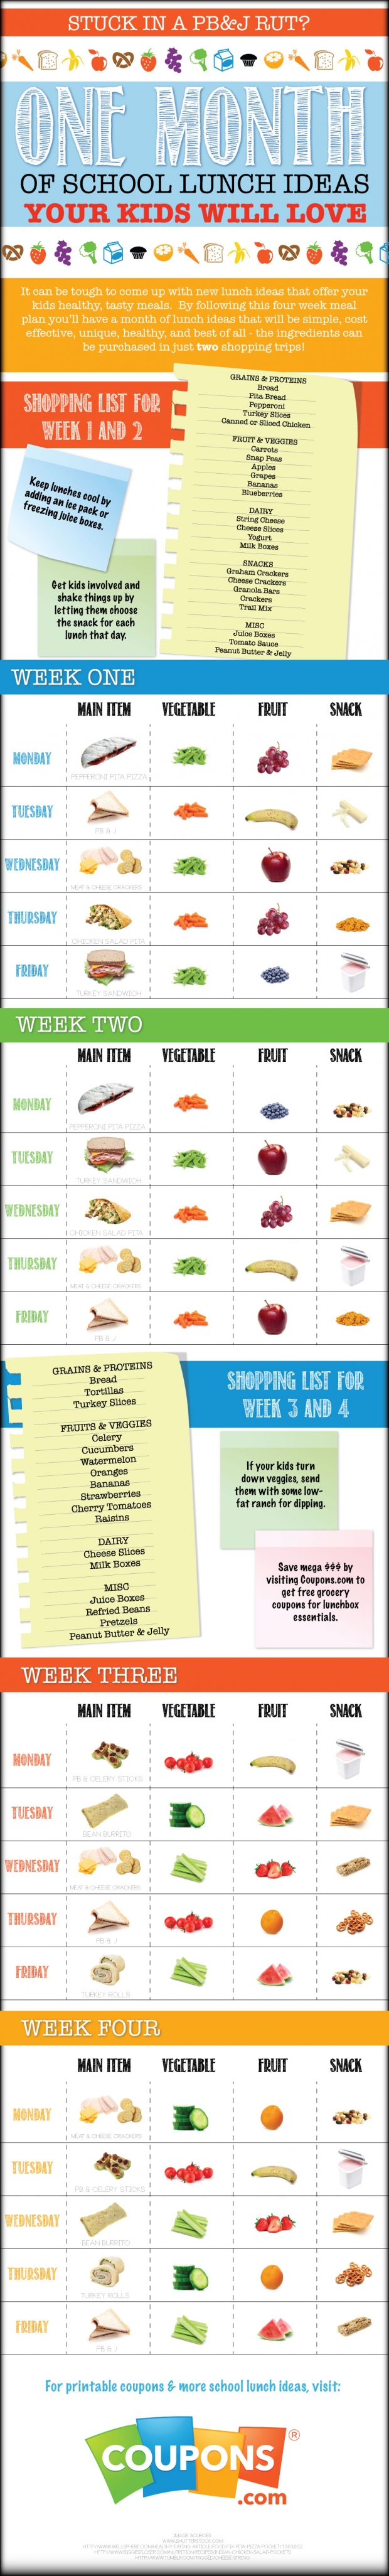 06 Infographic-School-Lunches-FINAL-620x4105